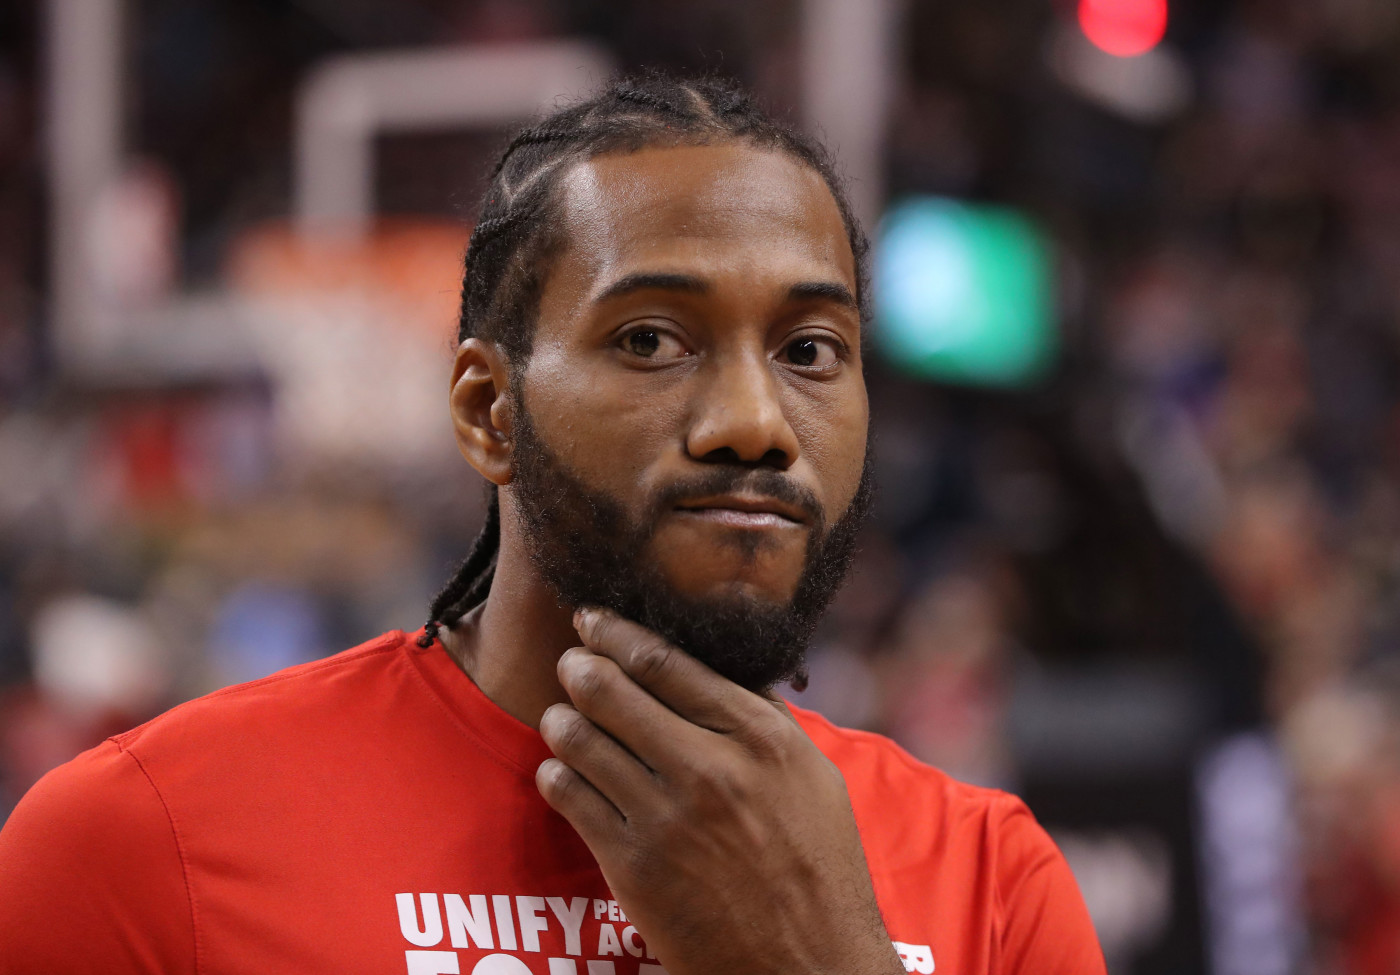 Kawhi Leonard Raptors Clippers Feb 2019